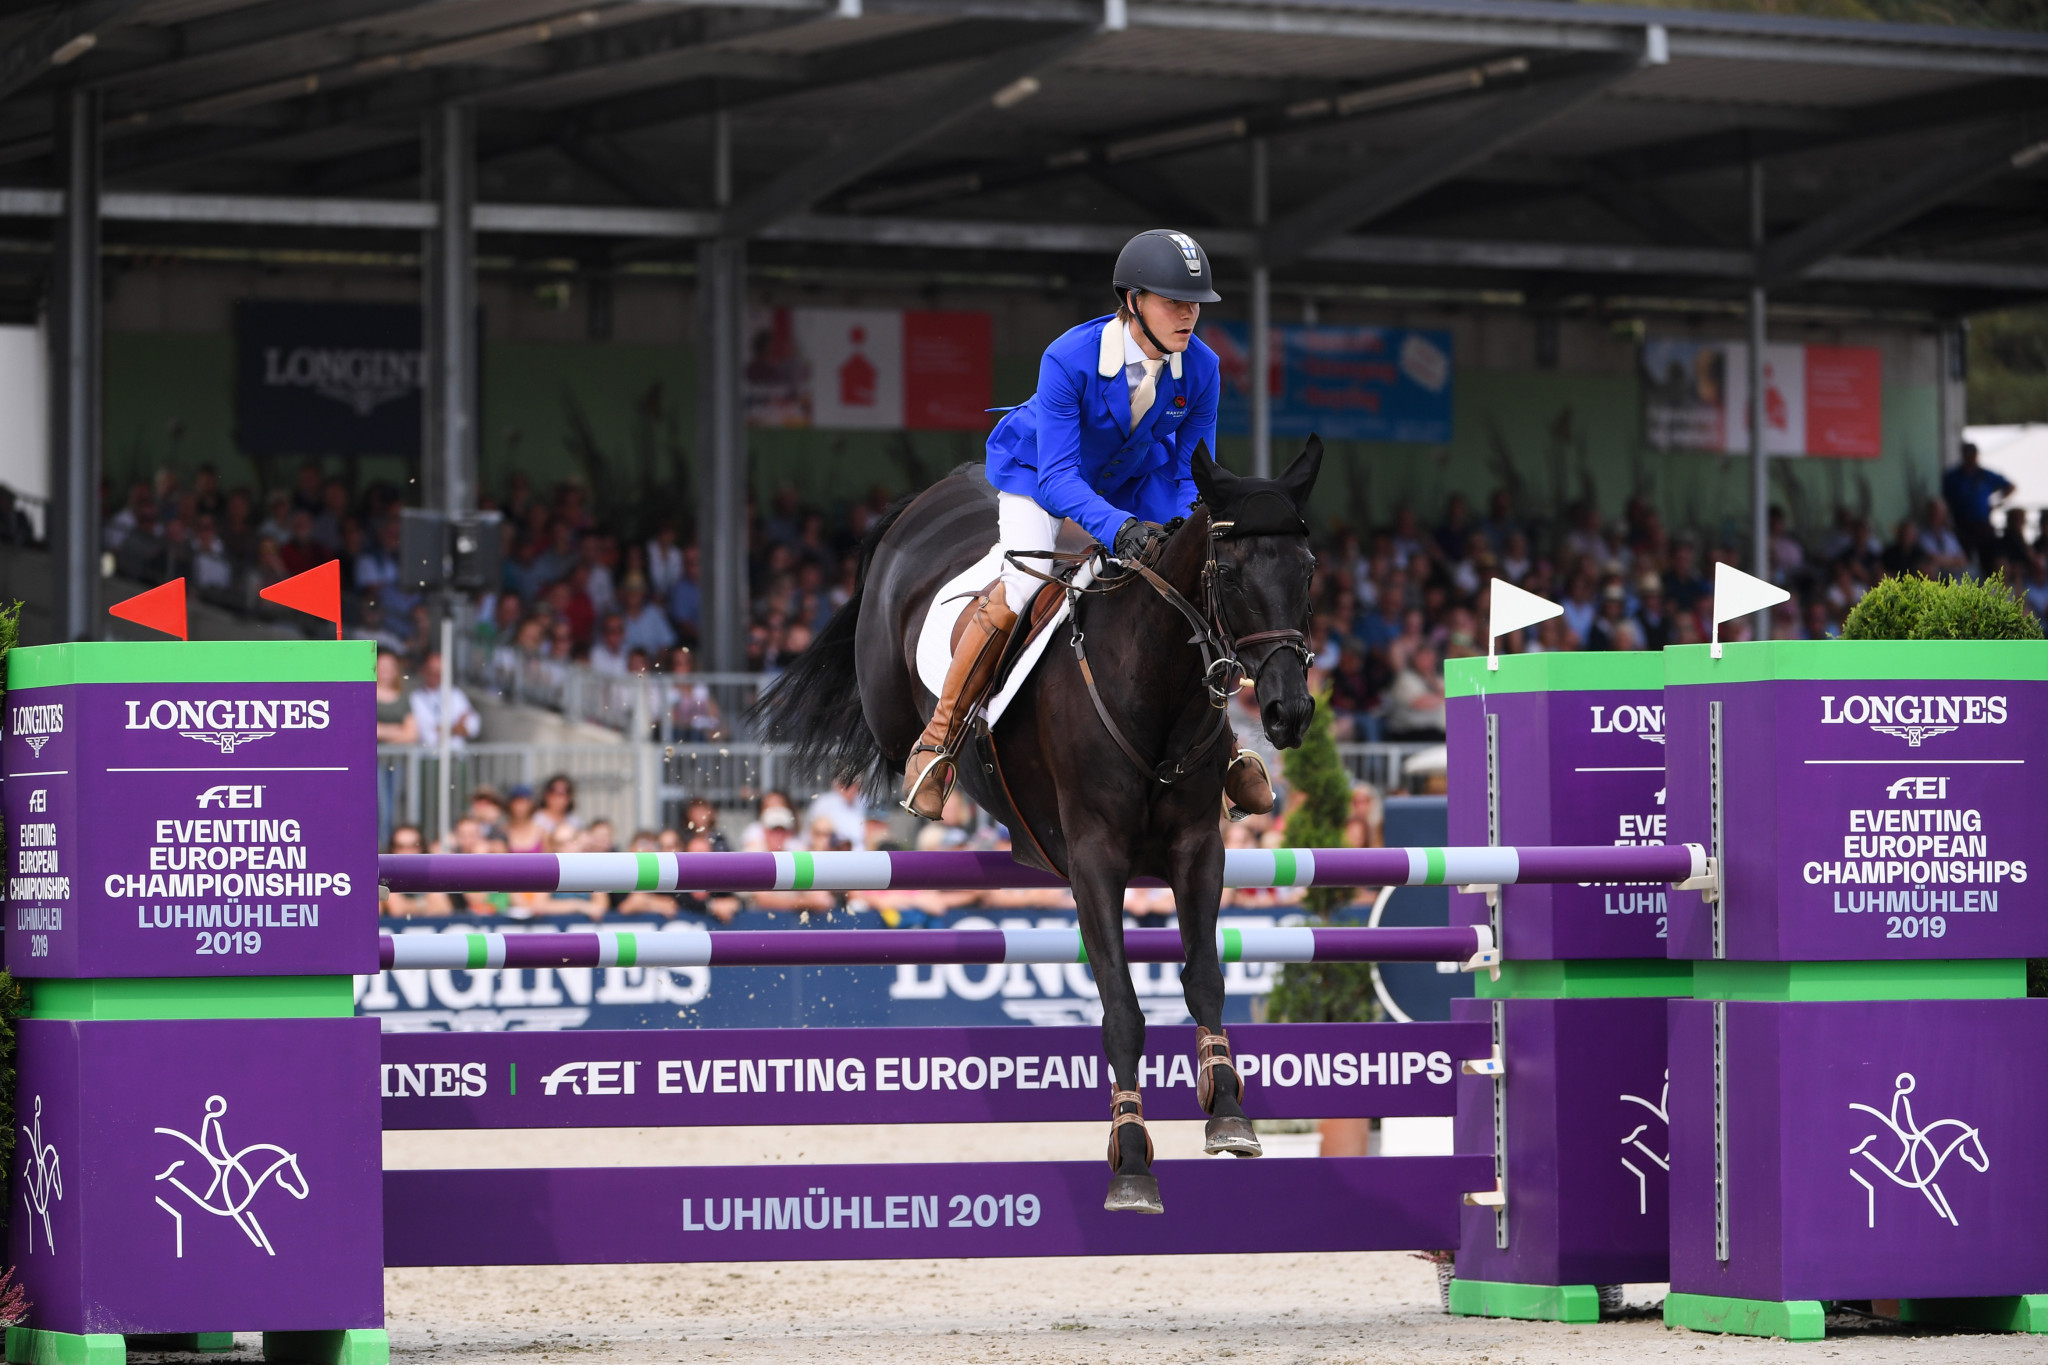 Avenches replaces Haras du Pin as host of 2021 FEI Eventing European Championships